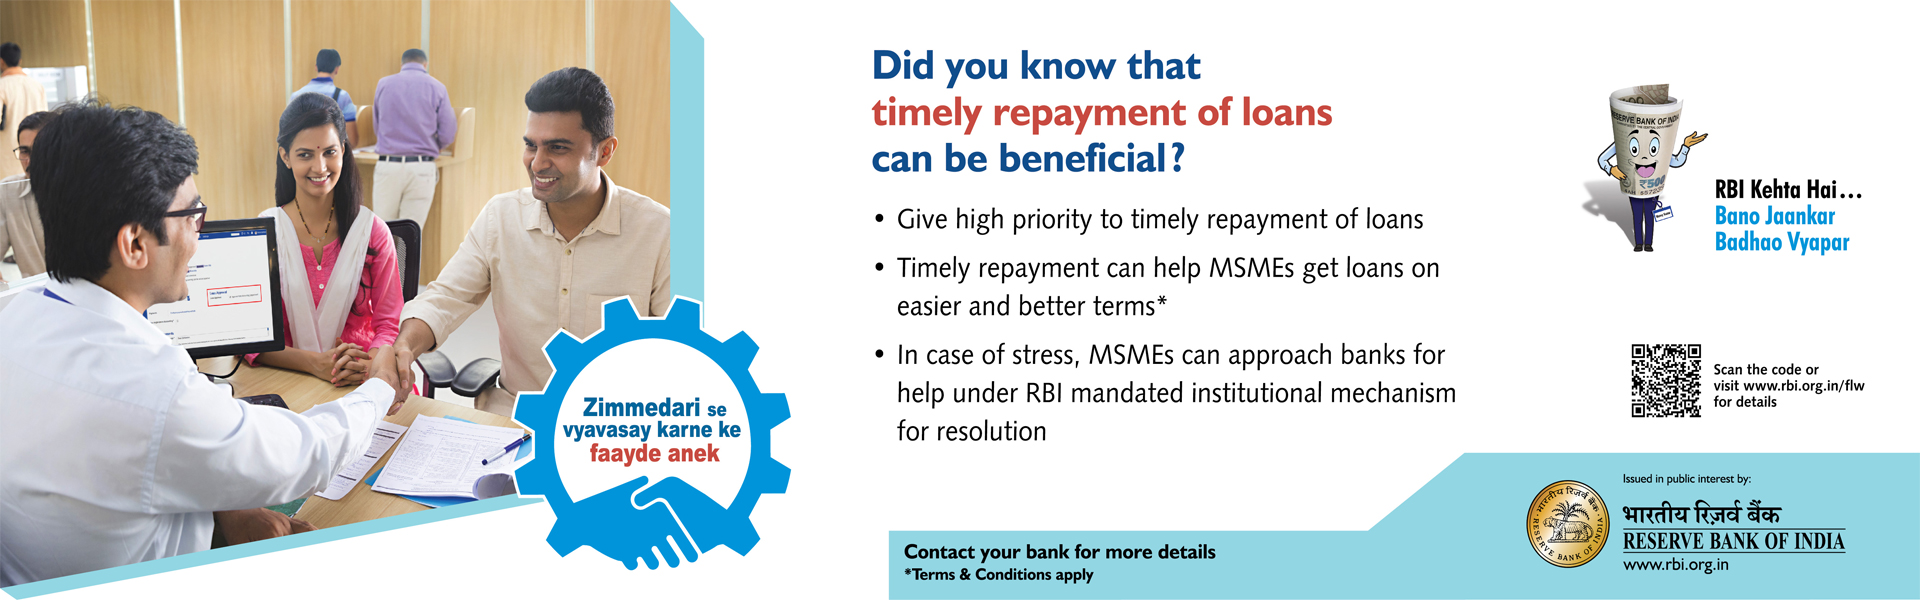 Ensure-Timely-Repayment-of-Loans-Get-RBI-Benefit